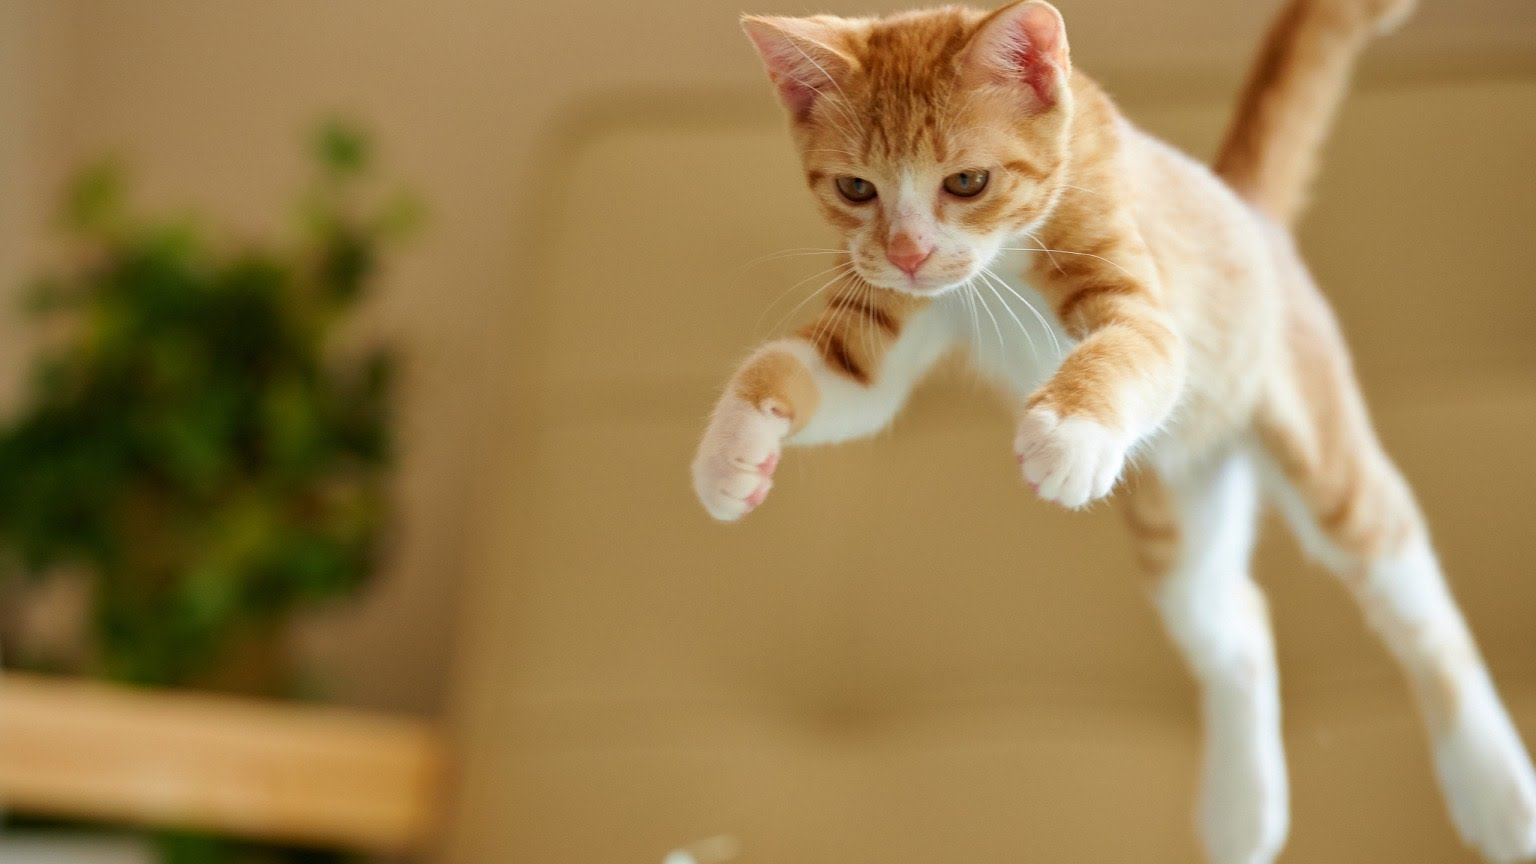 Why do Cats Suddenly Attack Their Owners?